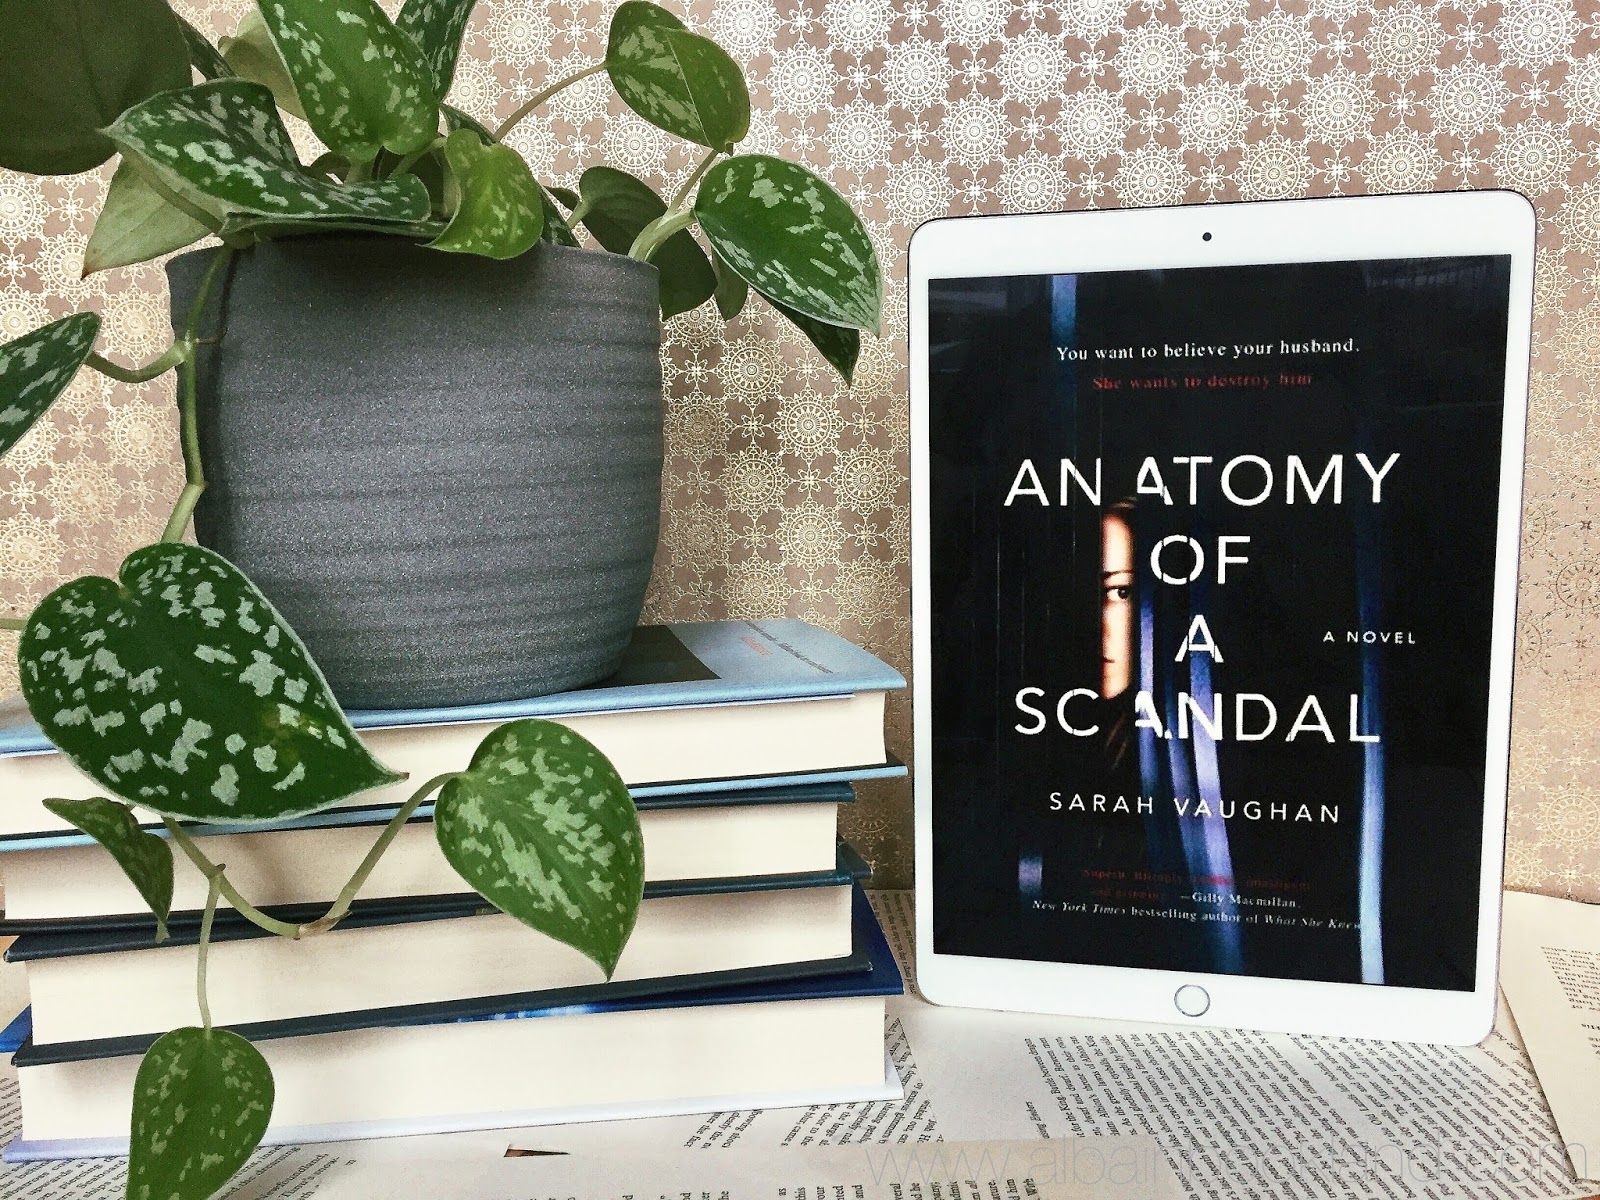 Book Review: Anatomy of a Scandal by Sarah Vaughan - Alba in bookland